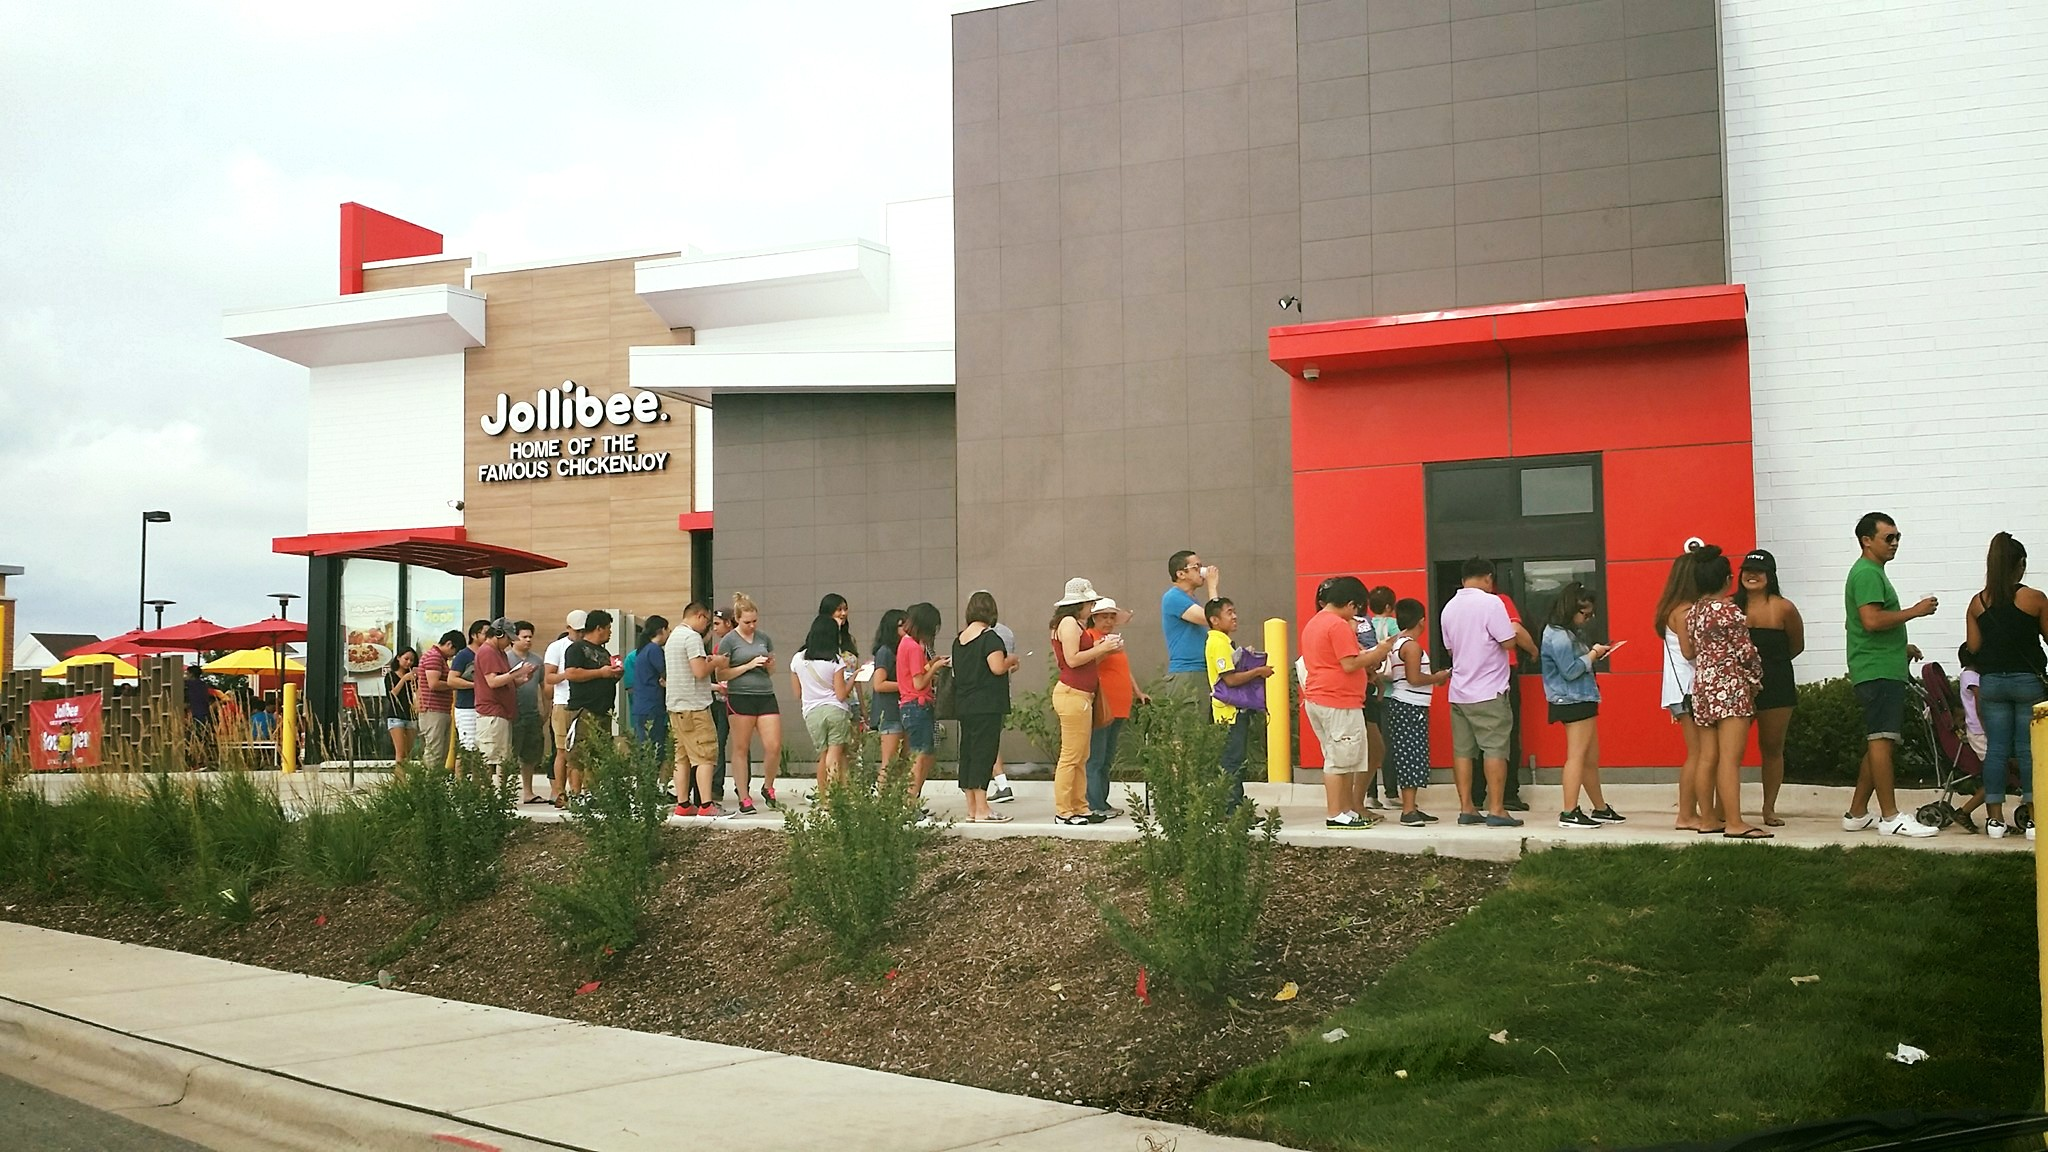 Lines with four to five hours waits were reported this morning at the Jollibee opening in Skokie.